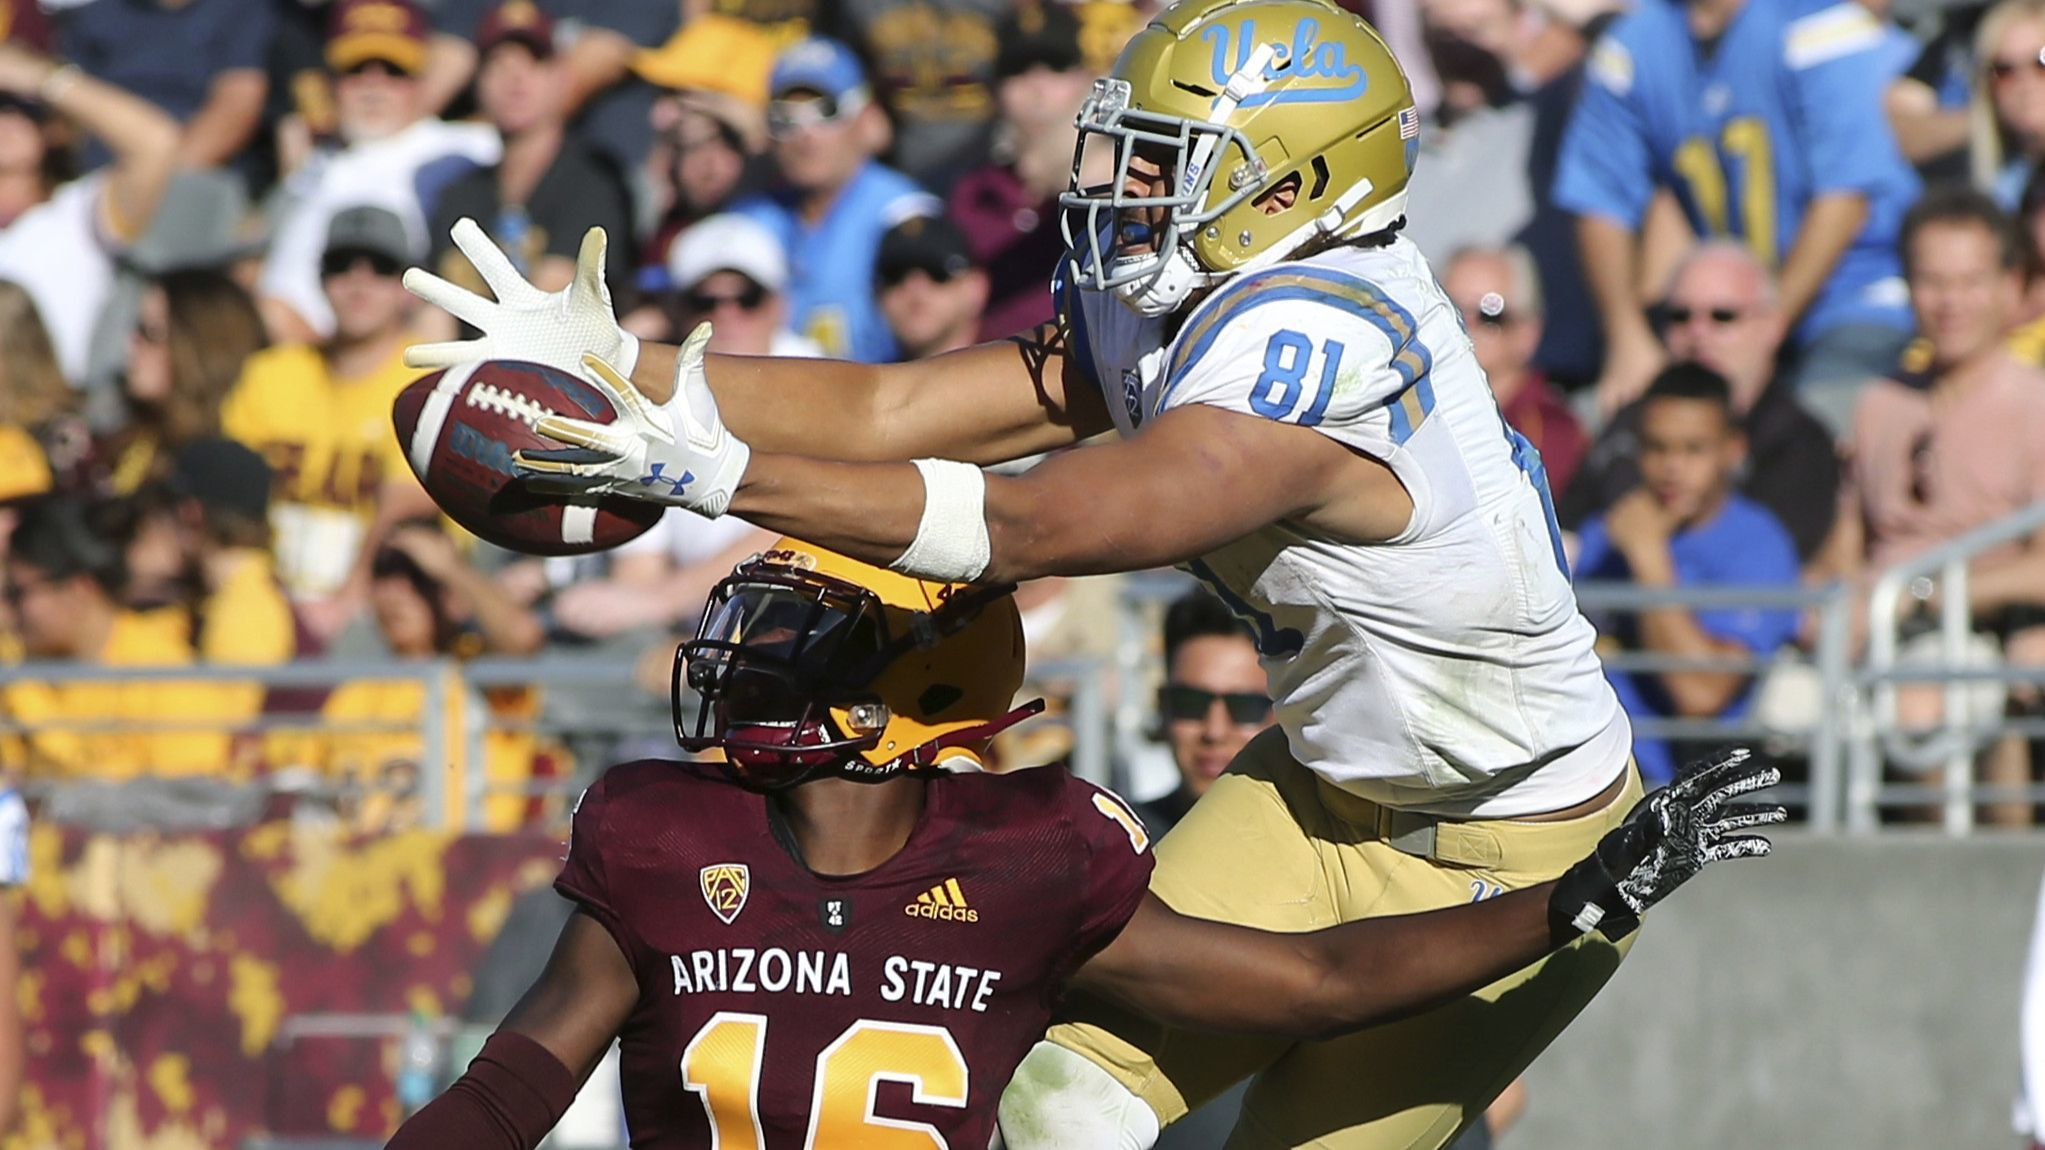 Tight end Caleb Wilson is a busy guy for UCLA at Arizona State